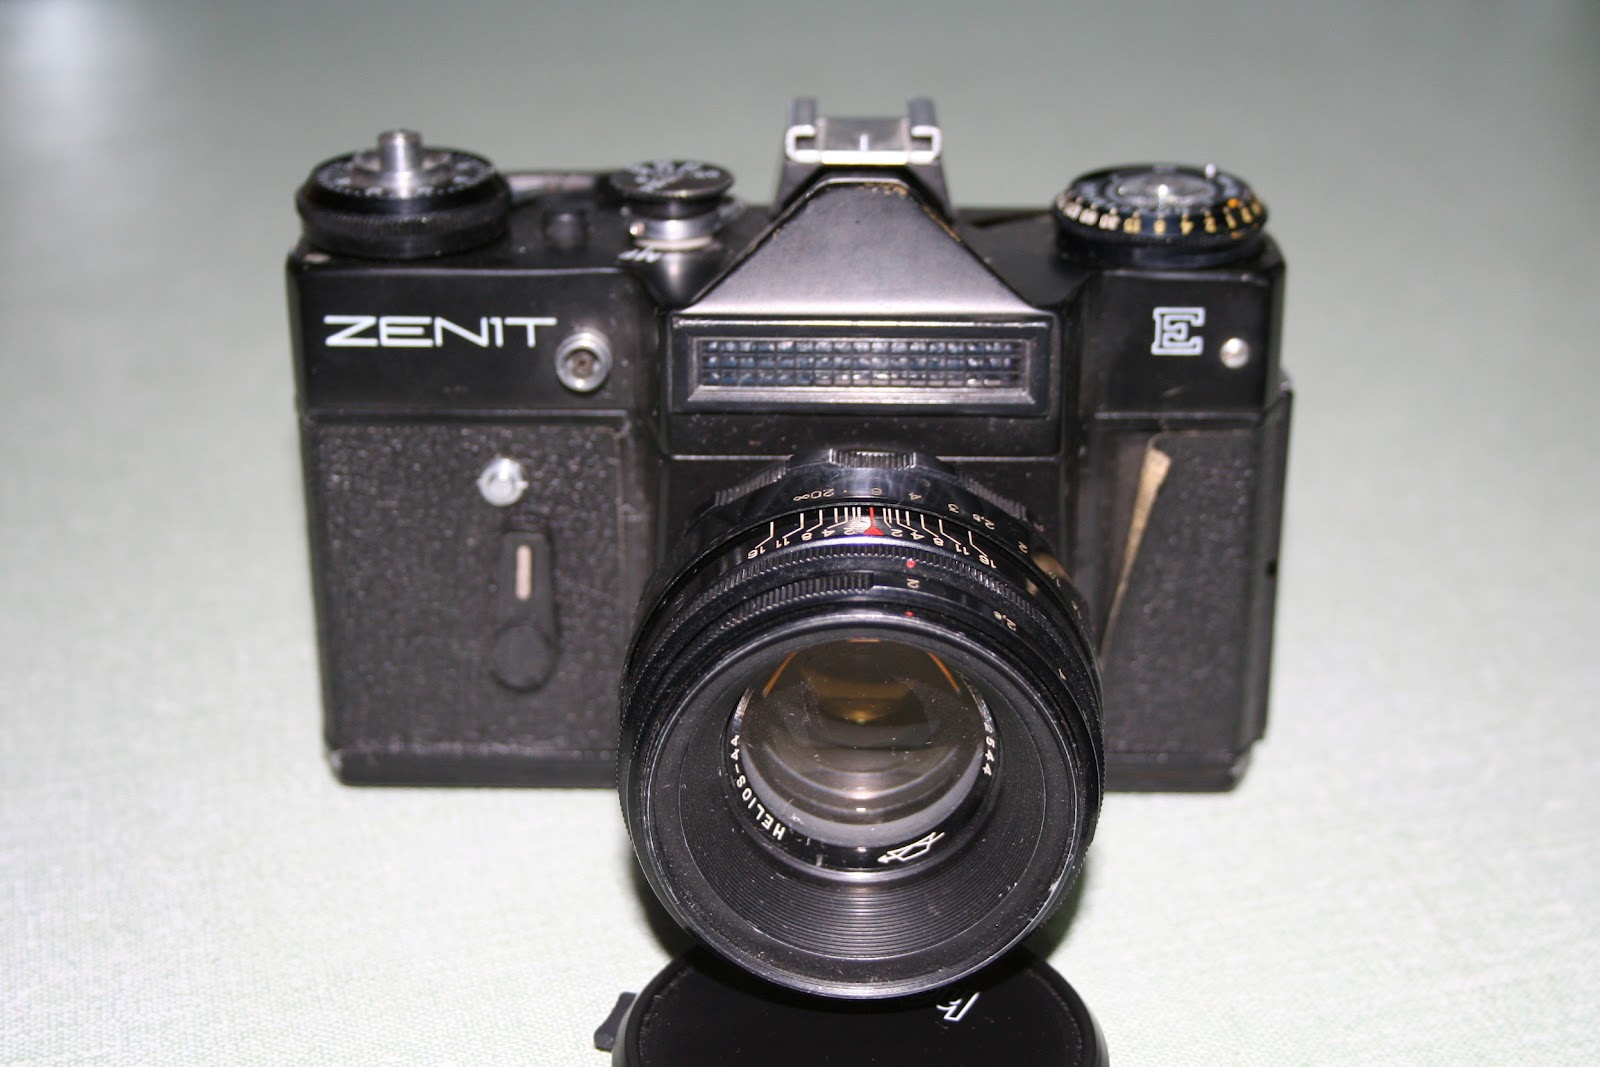 Zenit: John Margetts' Old Camera Blog.: Zenit E